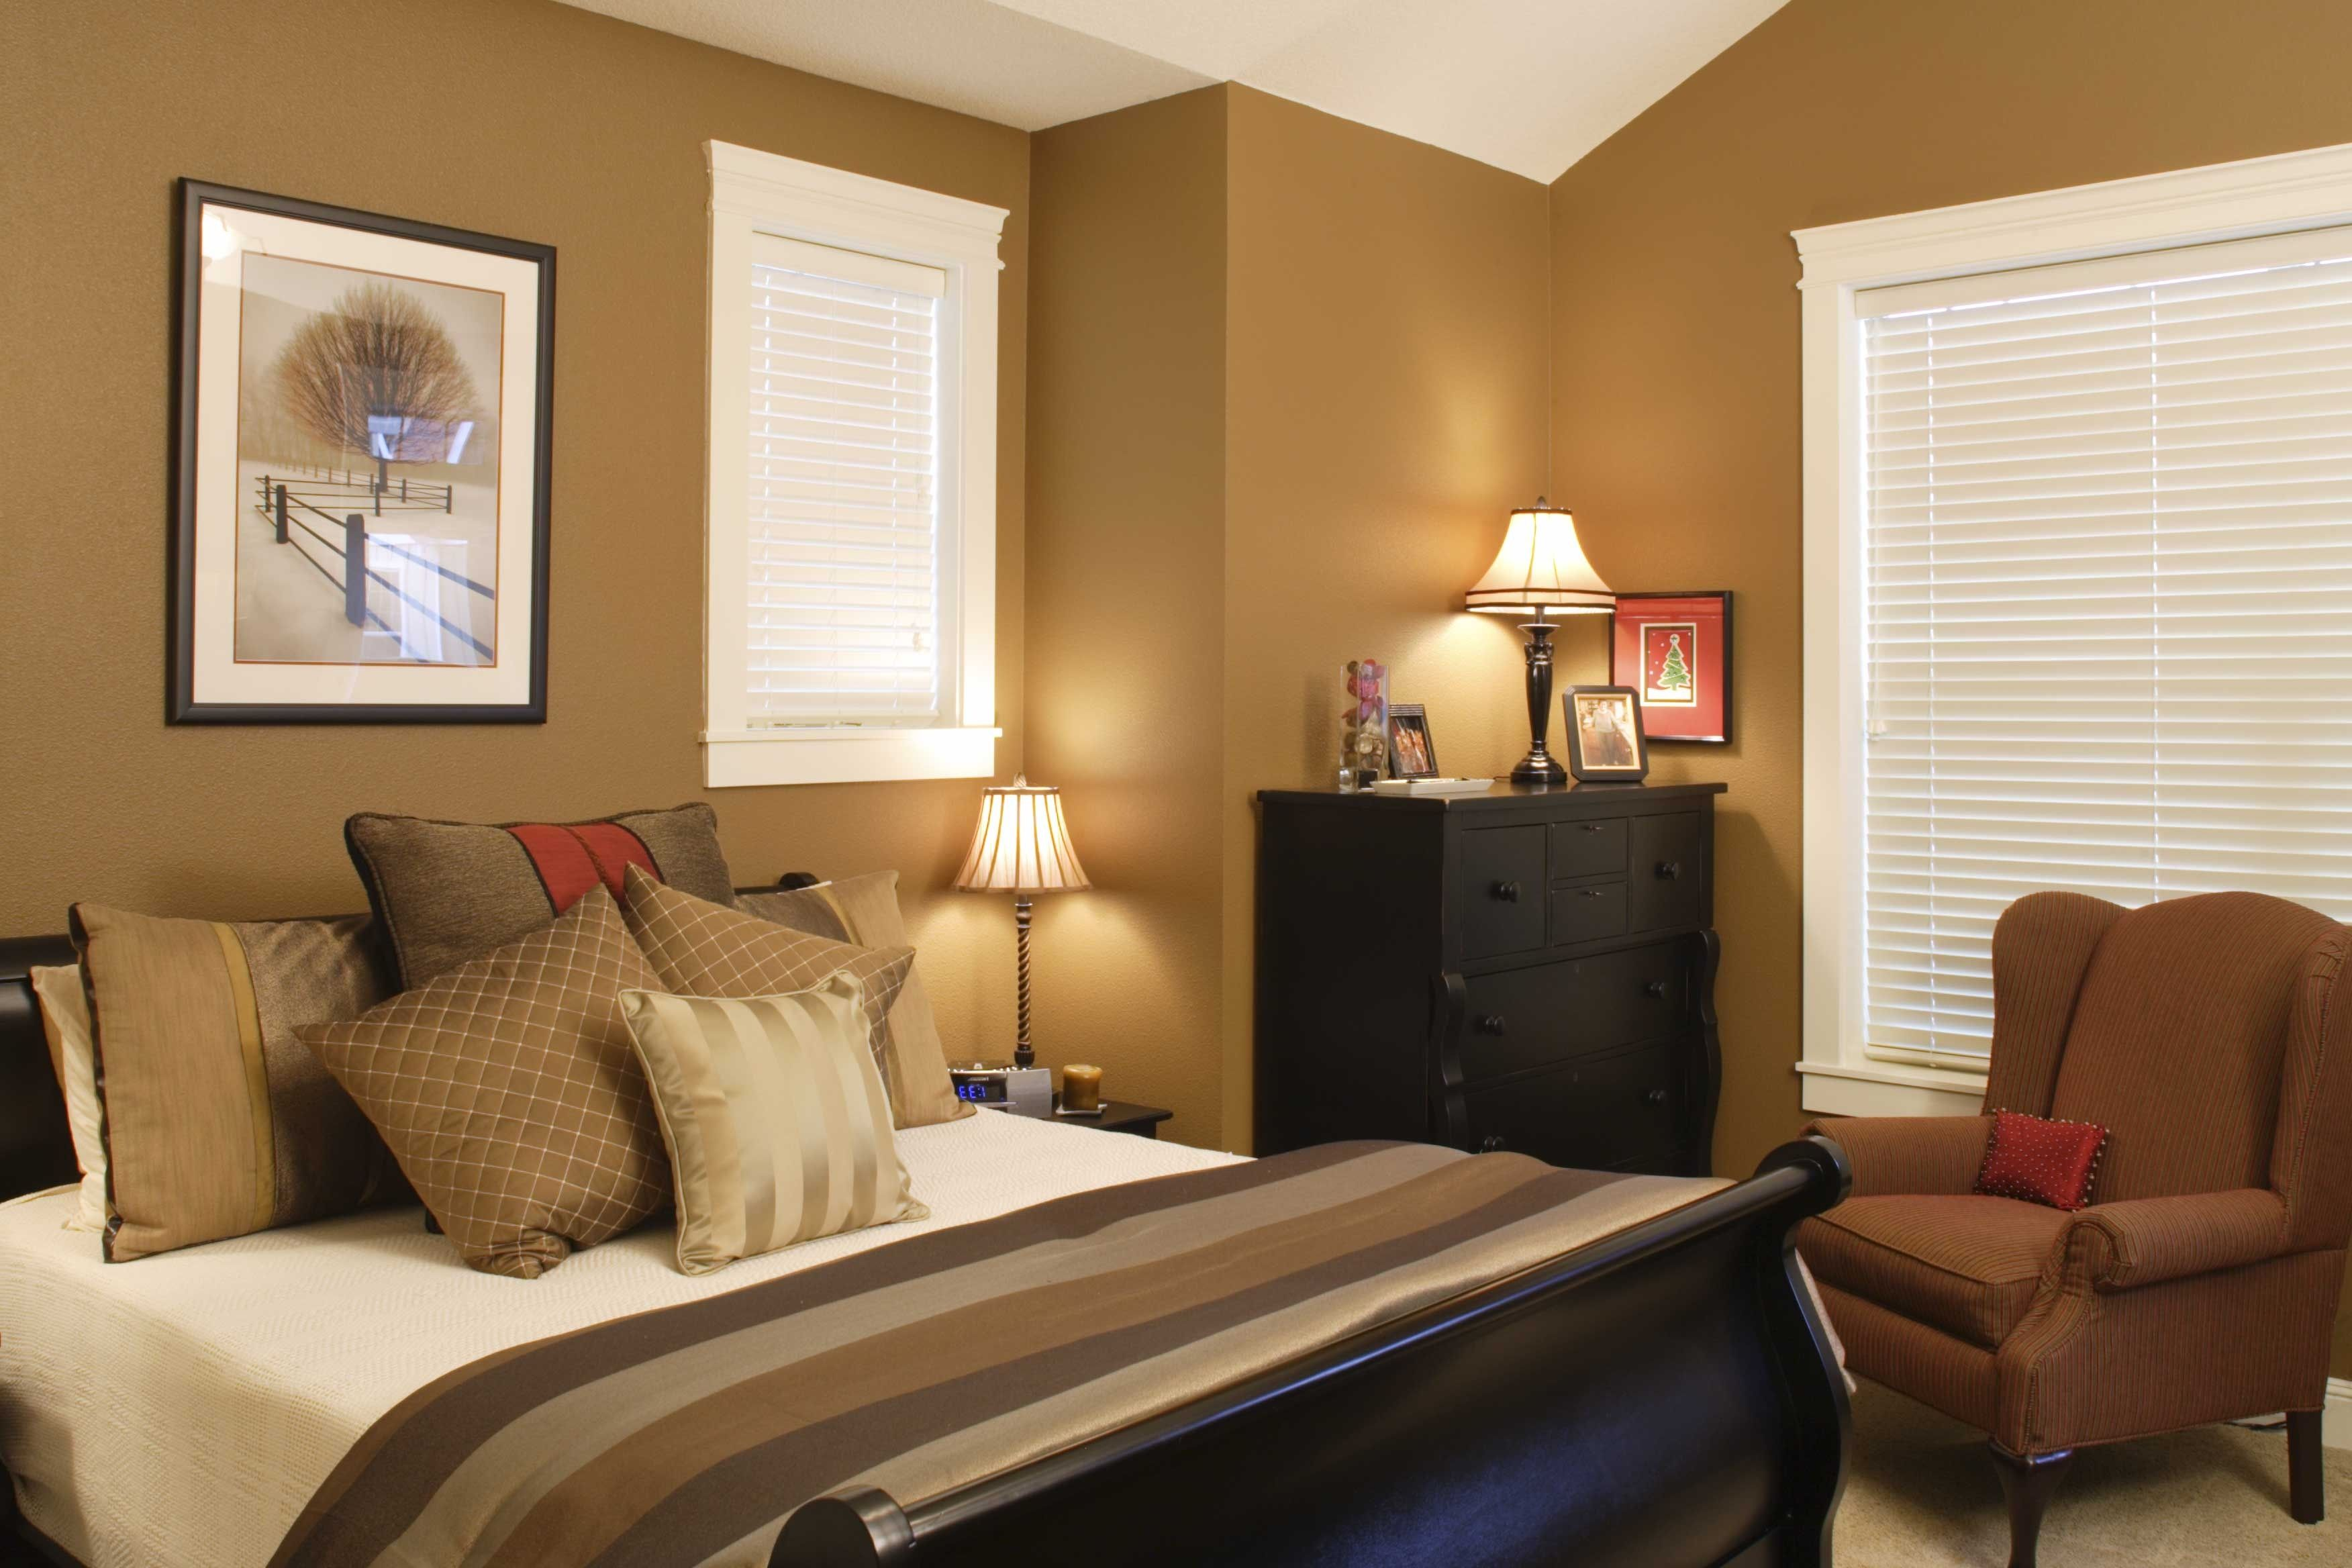 Paint & Colors, How To Combine Best Colors To Paint A Bedroom Ome ...